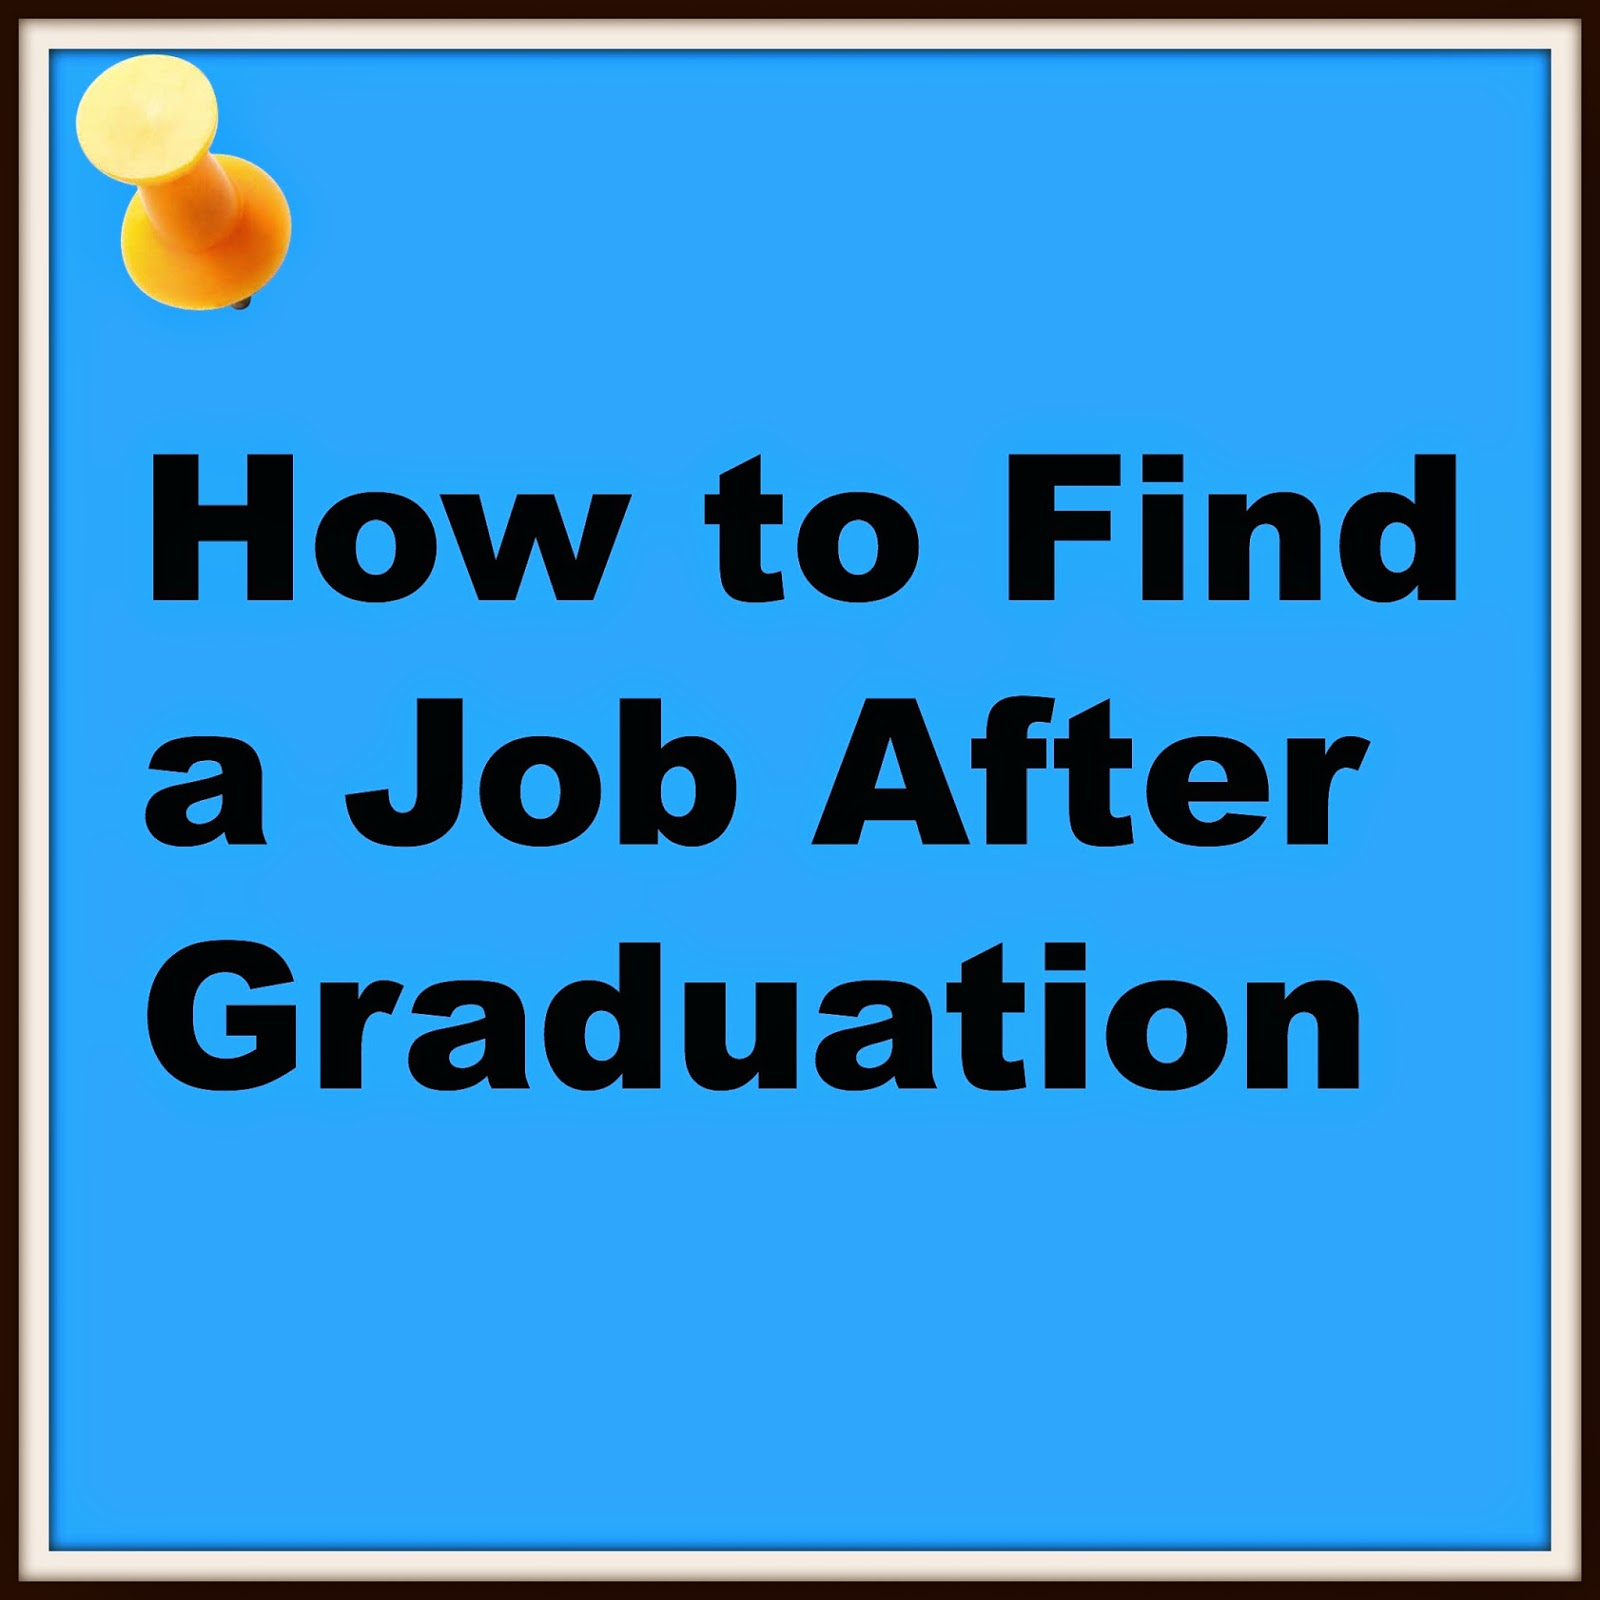 How to Find a Job After Graduation